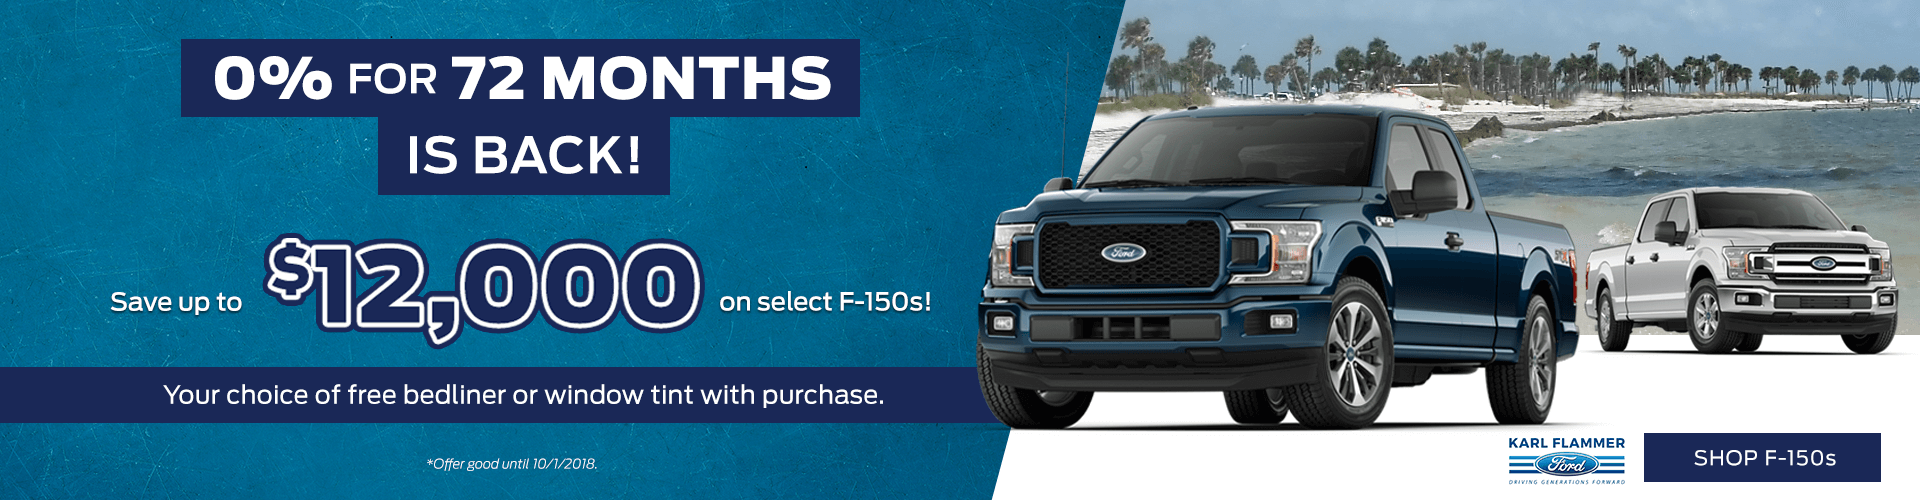 0% for 72 Months on Ford F-150s